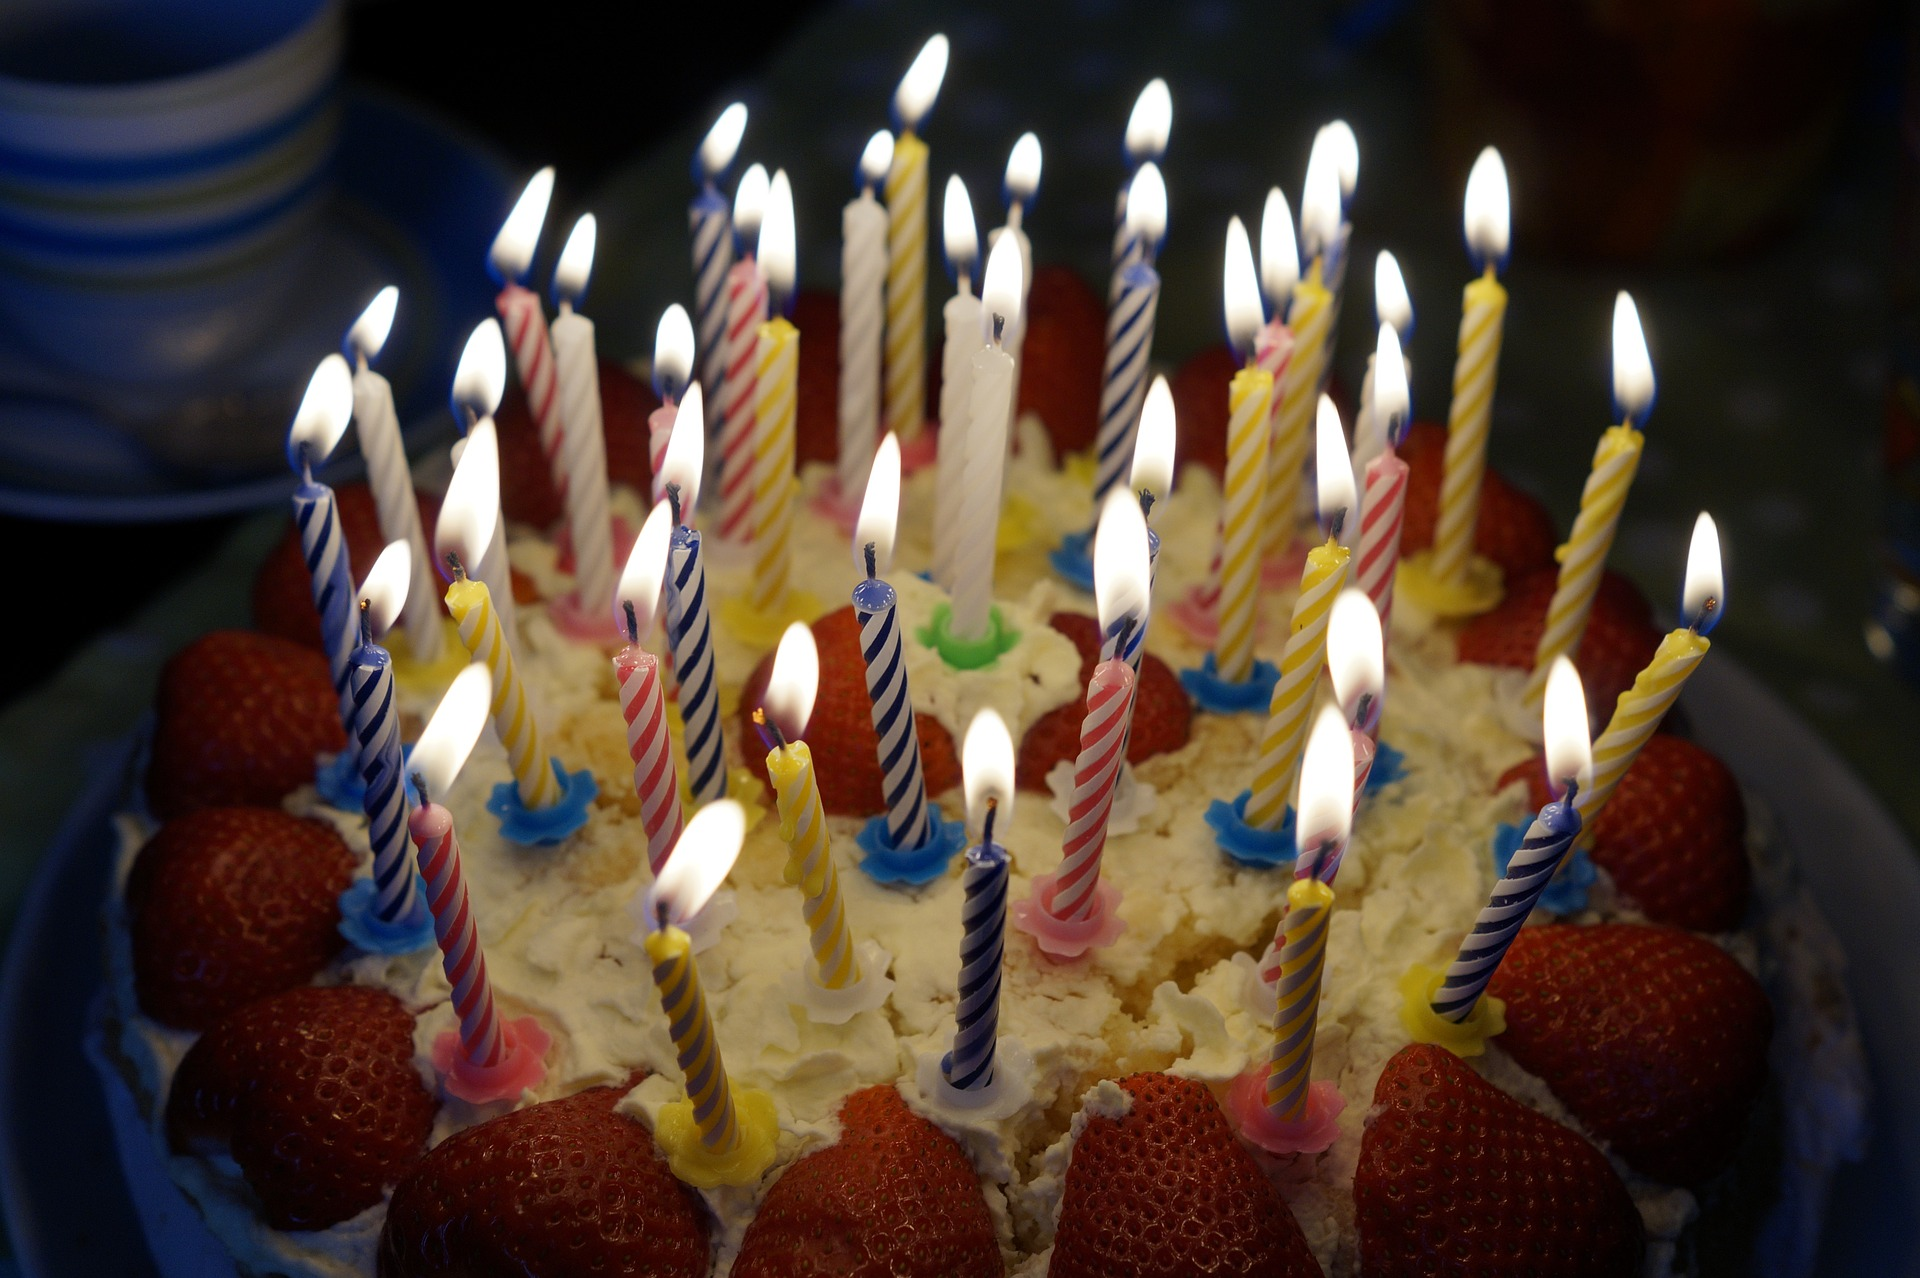 Birthday Cakes Boast A Long Illustr Ious History According To The Huffington Post Greeks And Romans Commemorated Births Of Gods Men With Candle Lit